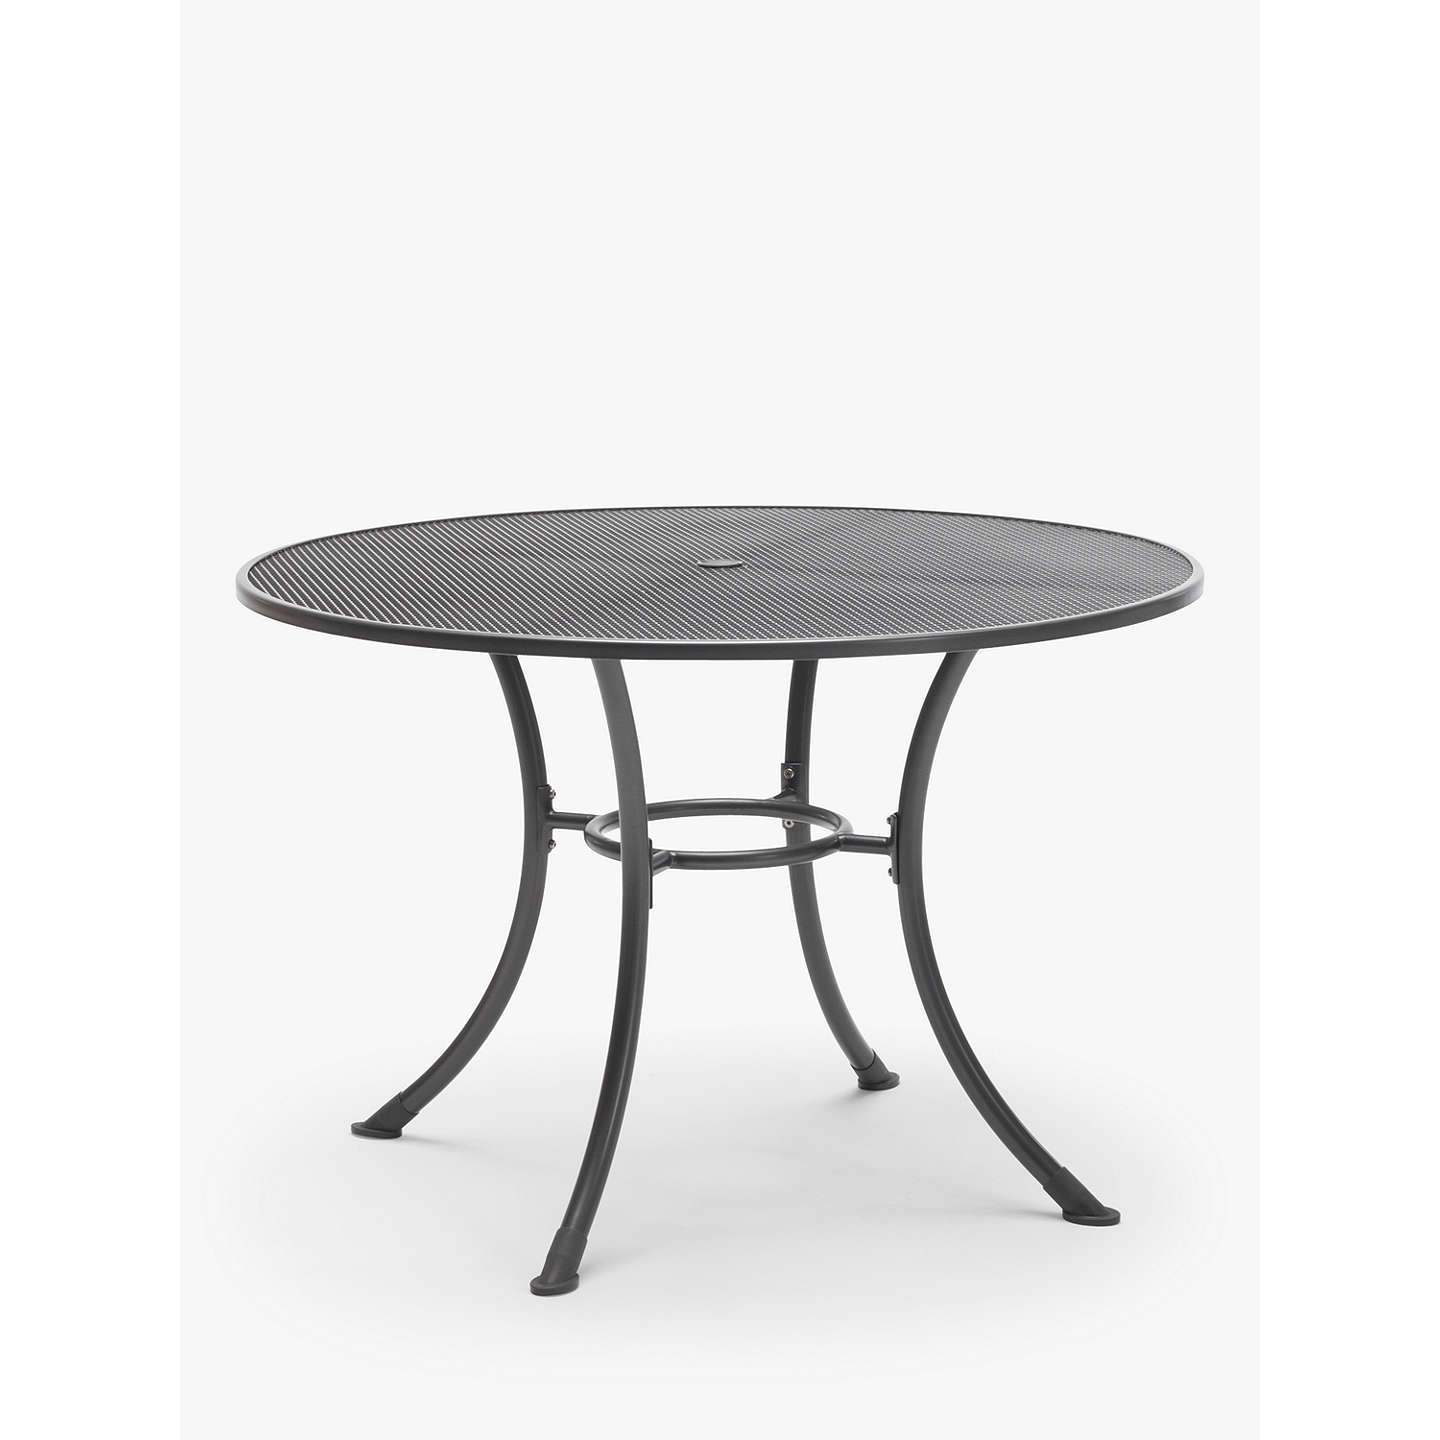 John lewis henley by kettler 4 seater round garden dining for John lewis chinese furniture